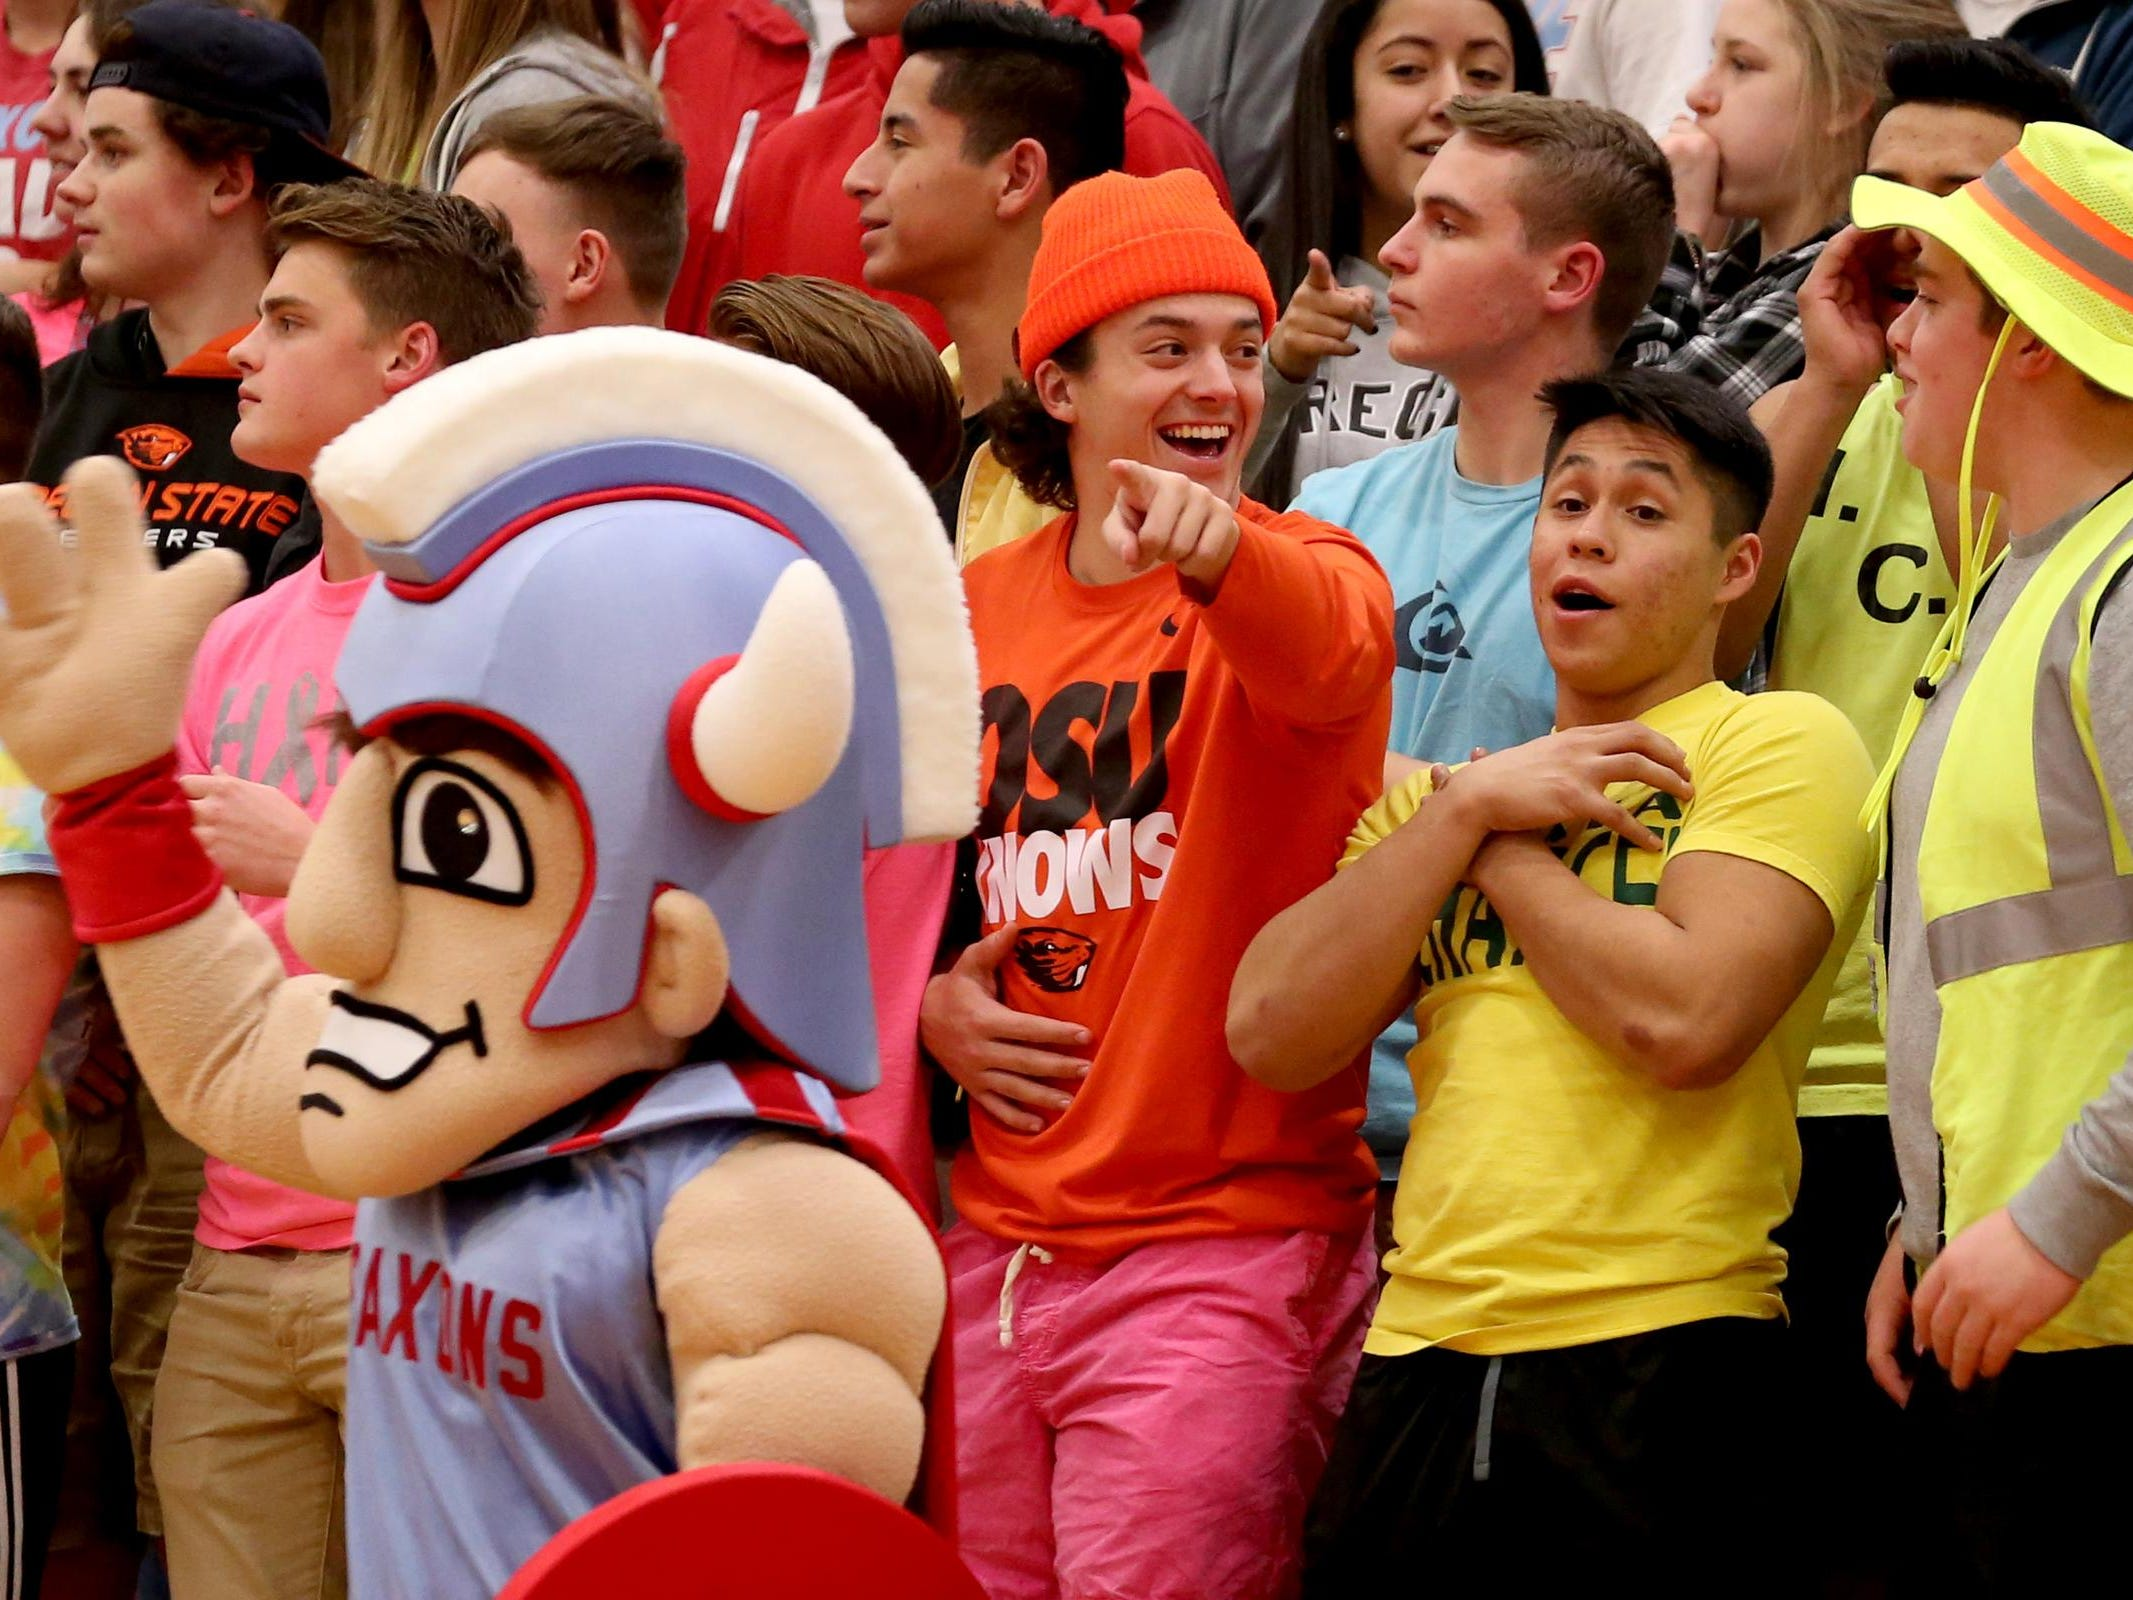 South Salem fans celebrate a play in the McNary vs. South Salem boy's basketball game at South Salem High School on Tuesday, Feb. 2, 2016. South Salem won the game 53-52.